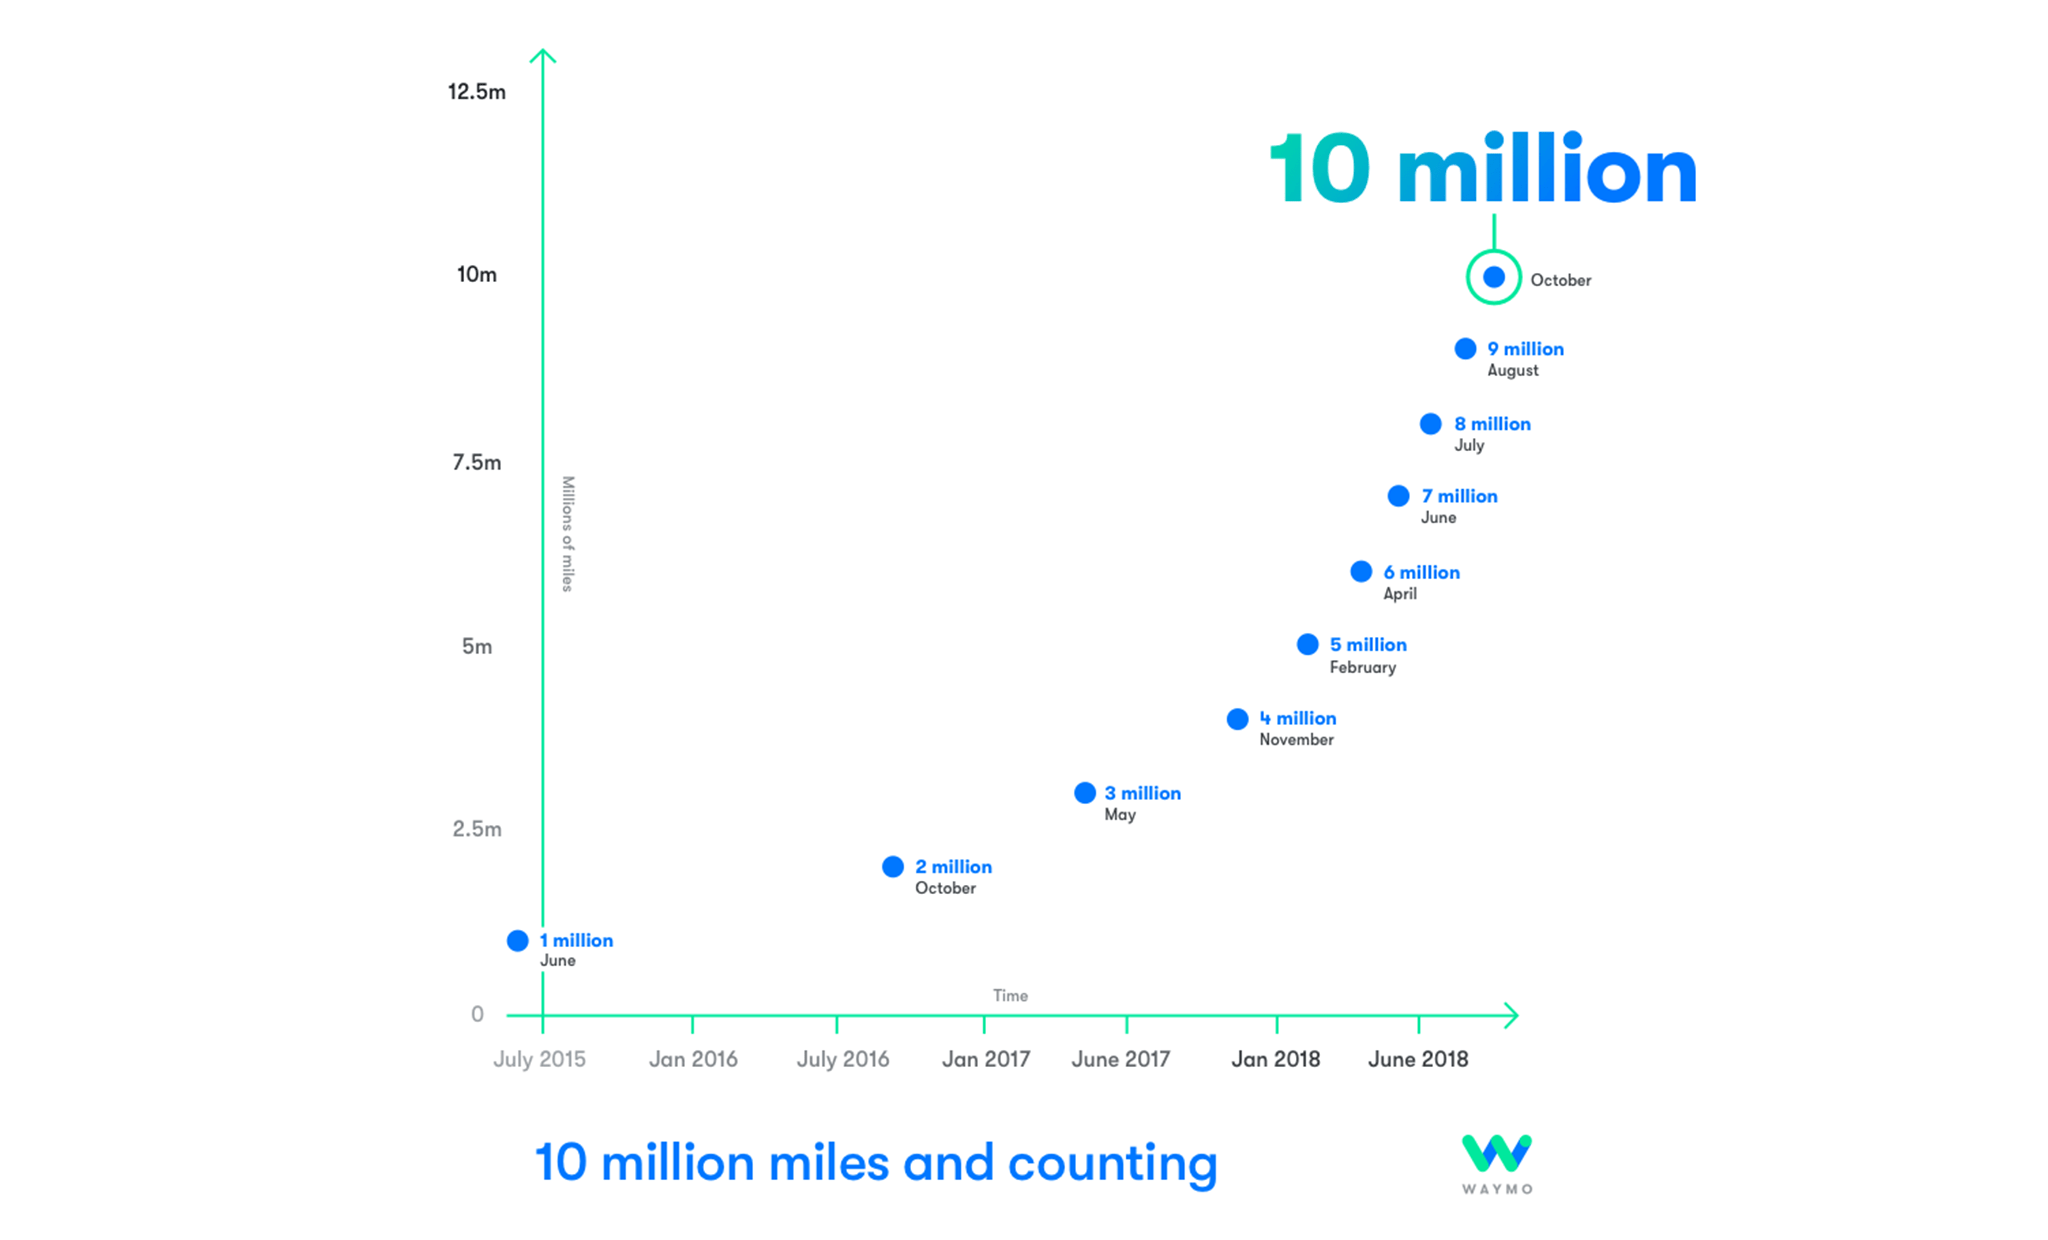 Increase in miles driven by Waymo's autonomous vehicles from 2015 to 2018